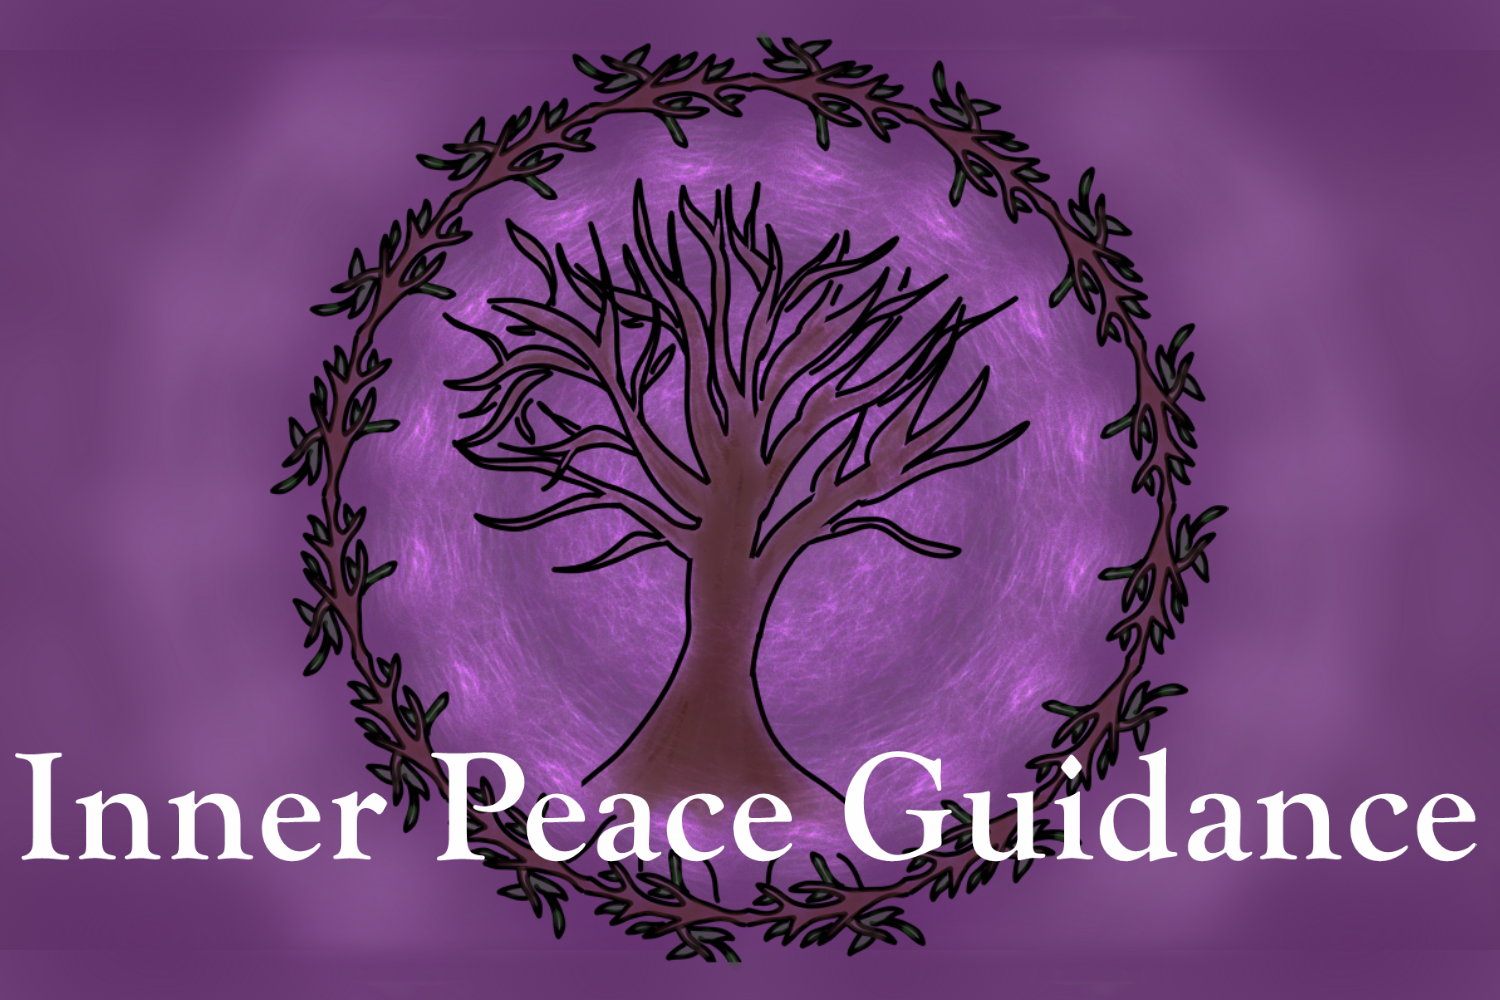 Personal coaching for deeper inner peace...